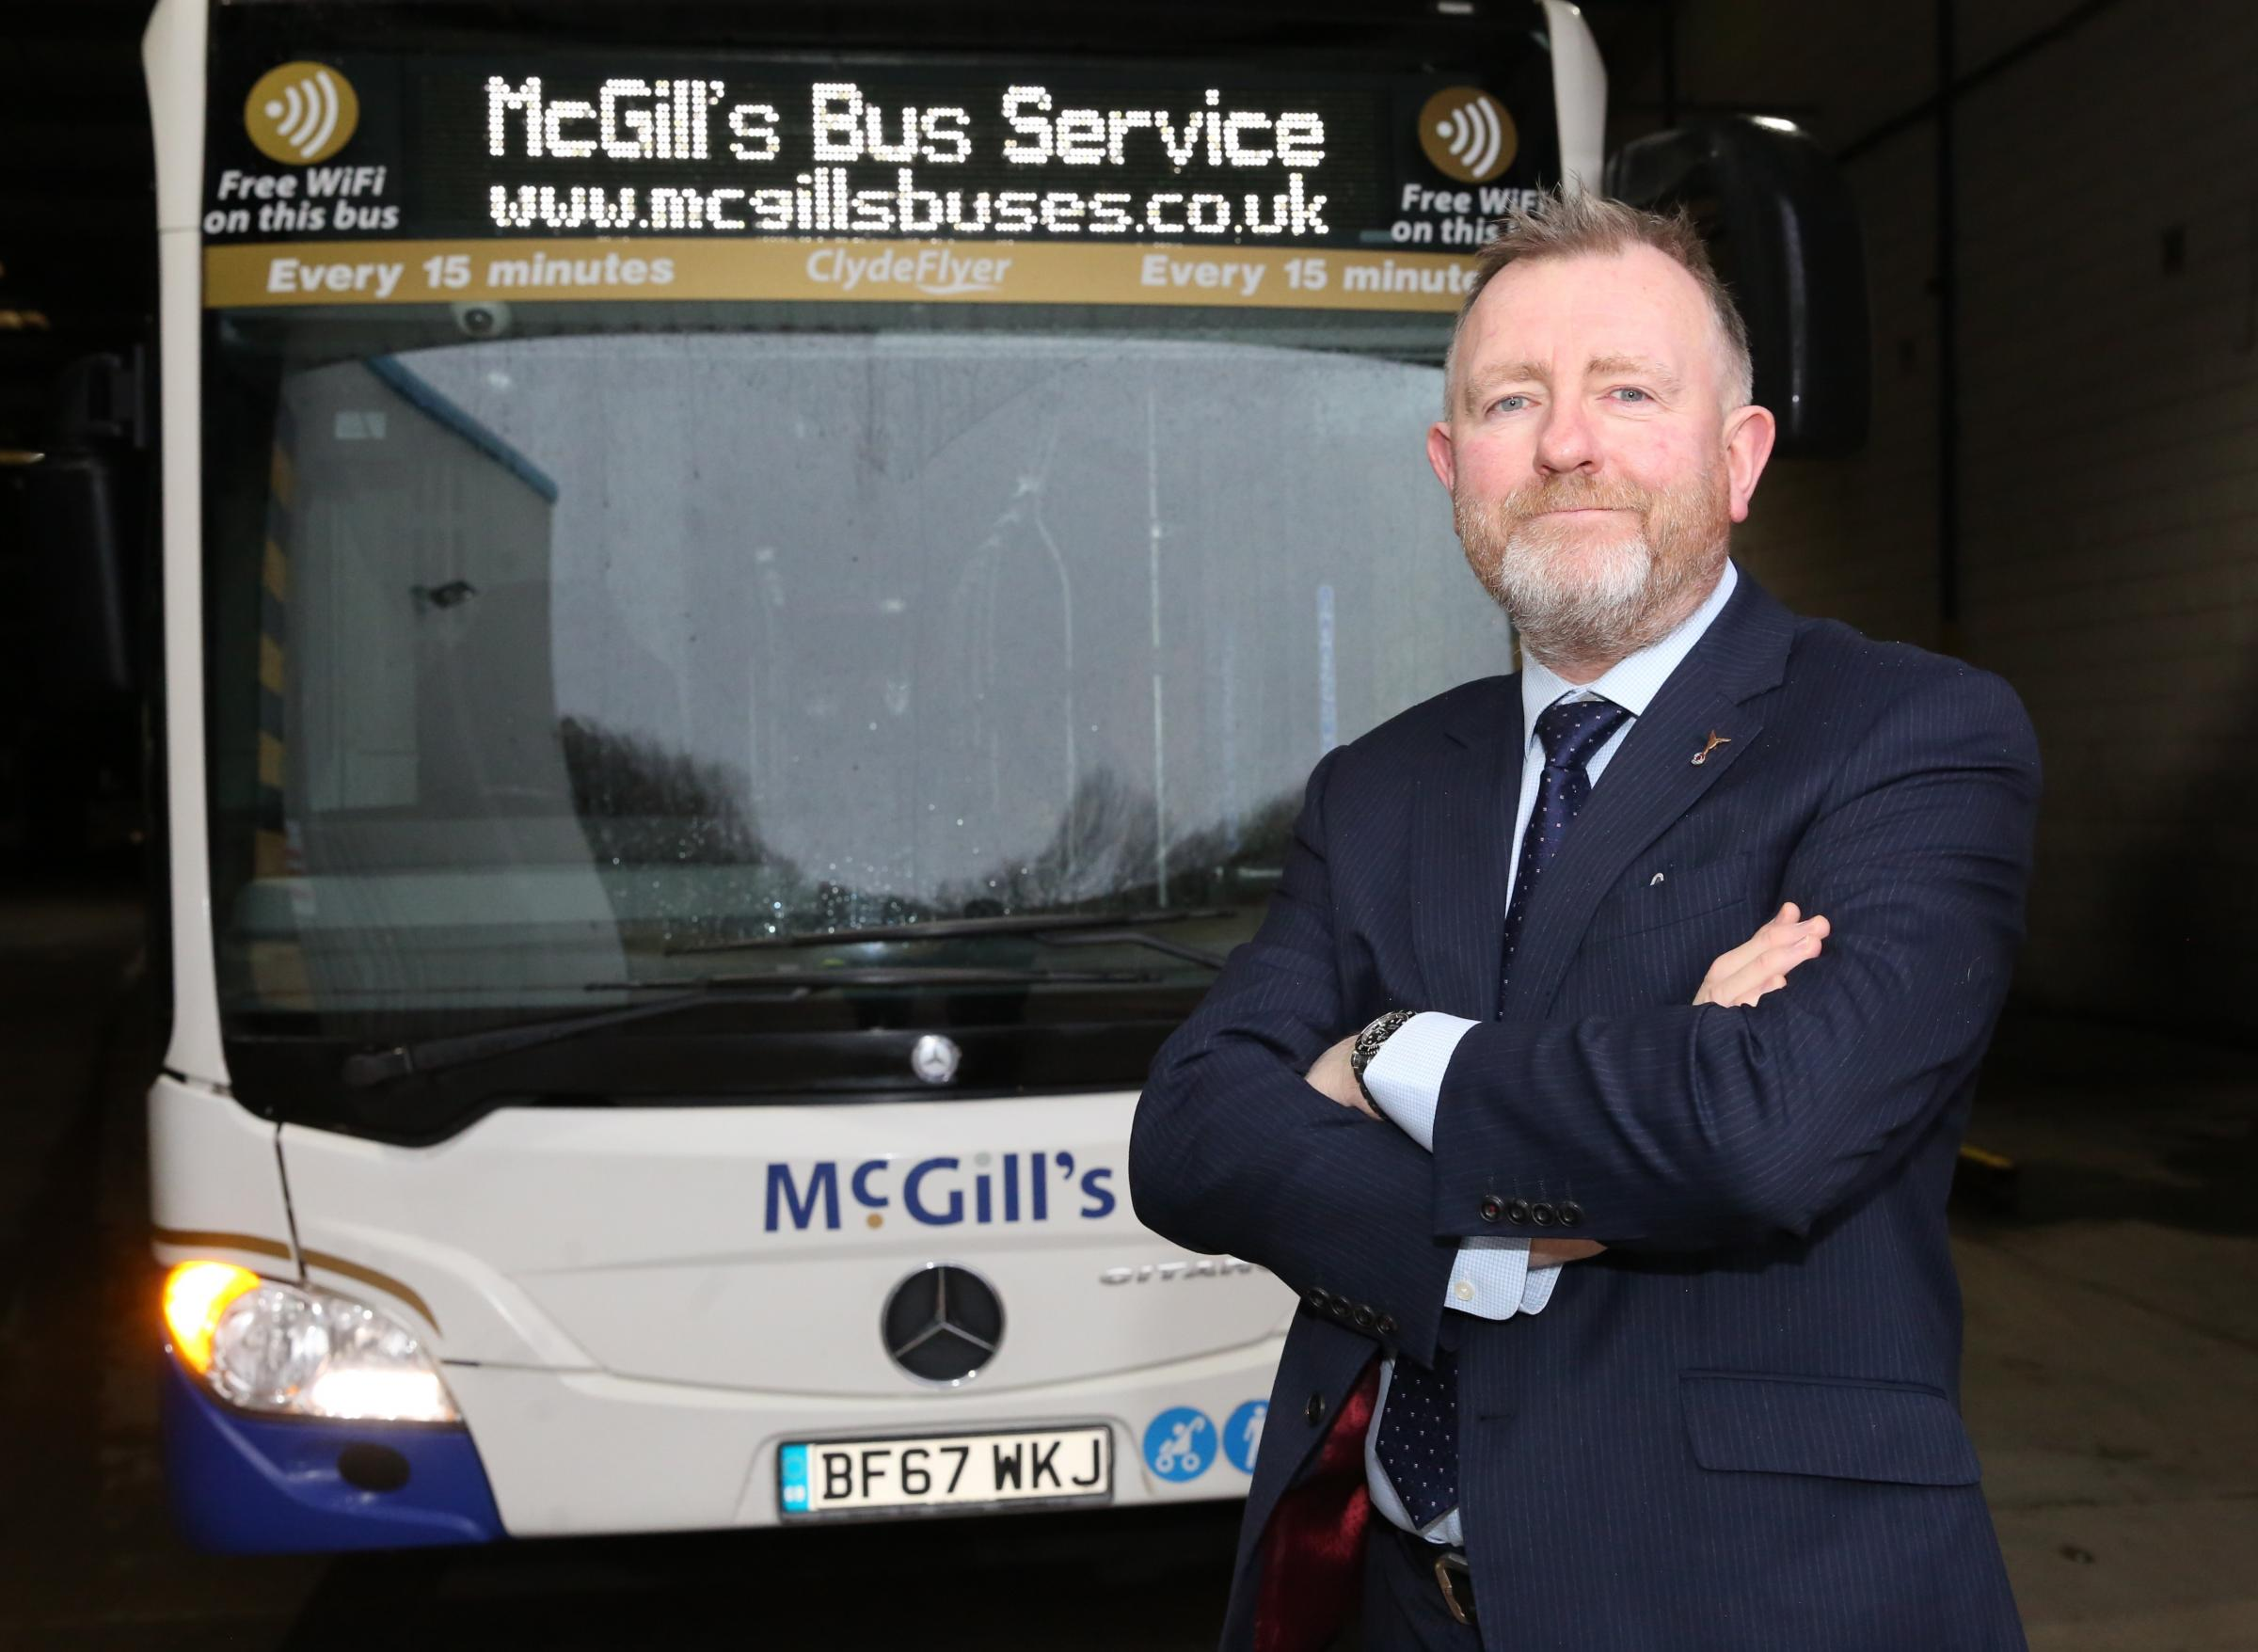 McGill's Buses emissions recognition. Managing director Ralph Roberts is pictured with a low-emissions bus at the company's Greenock headquarters.